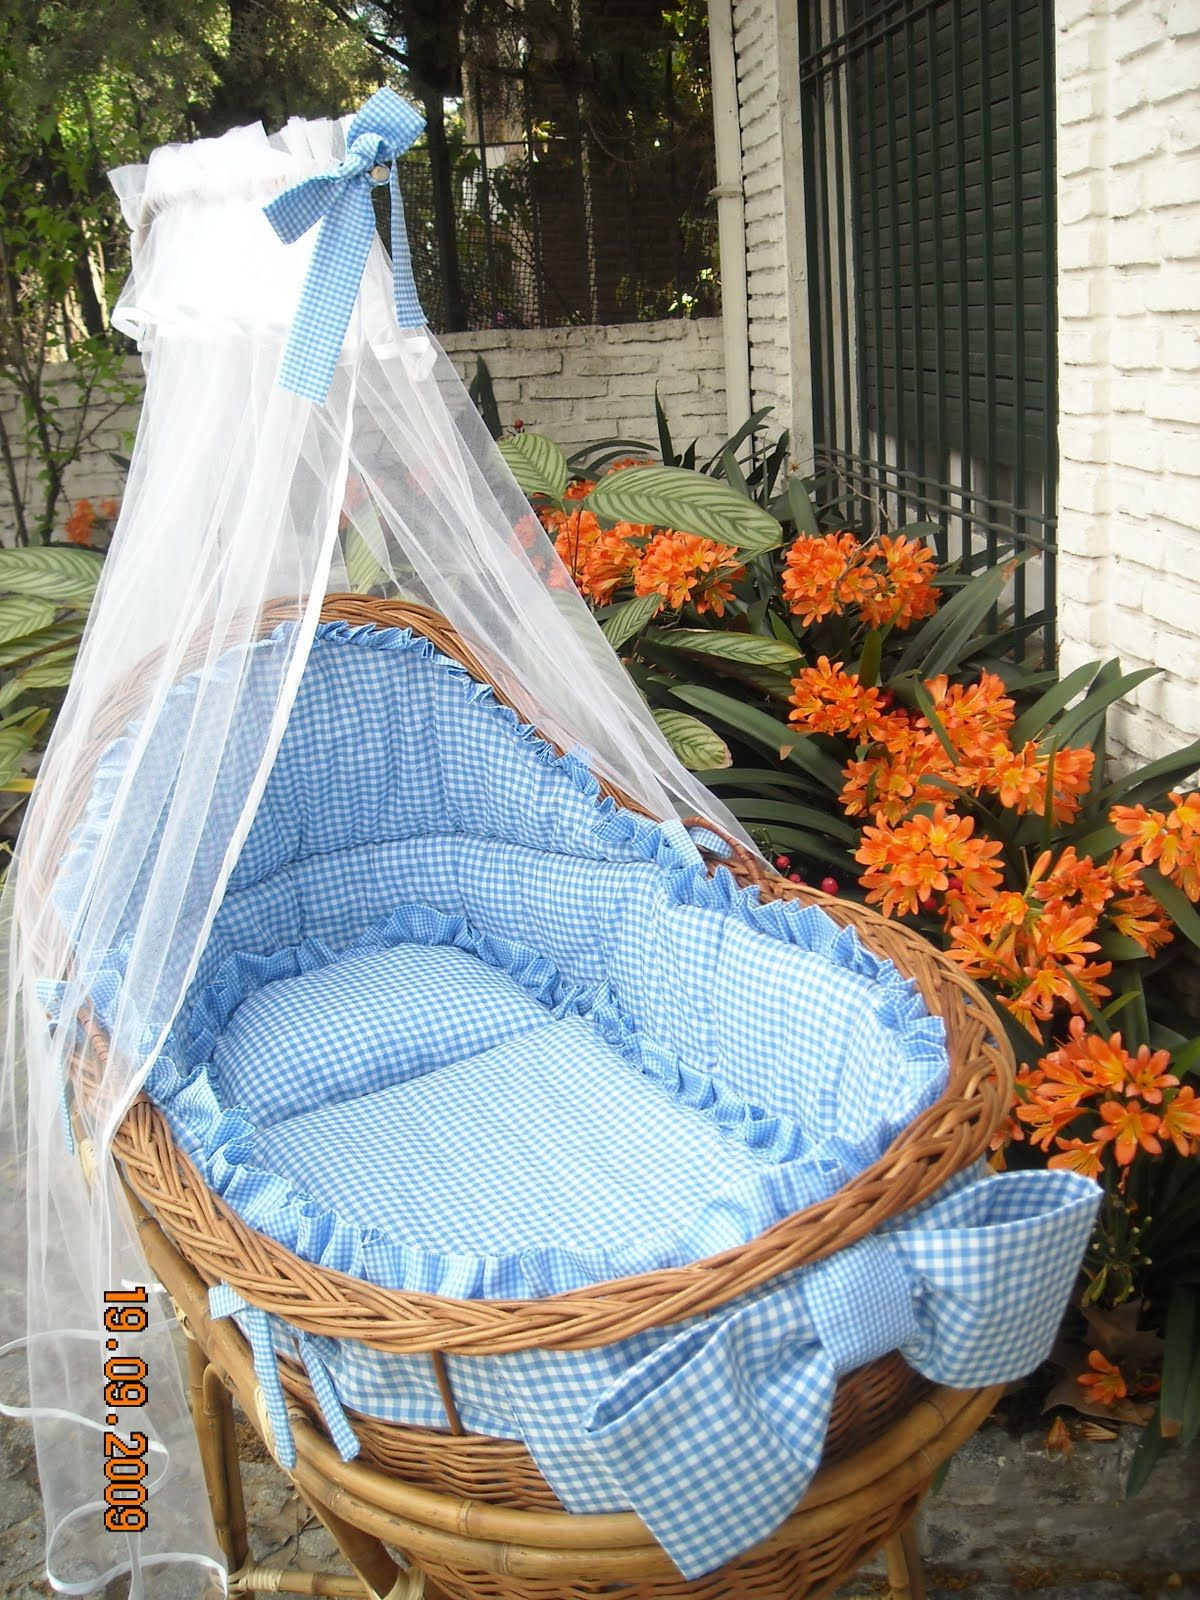 l o l i t a s c a s t l e . c 17 Best images about acolchados bebe on Pinterest | Floral quilts, Crib  quilts and Butterflies